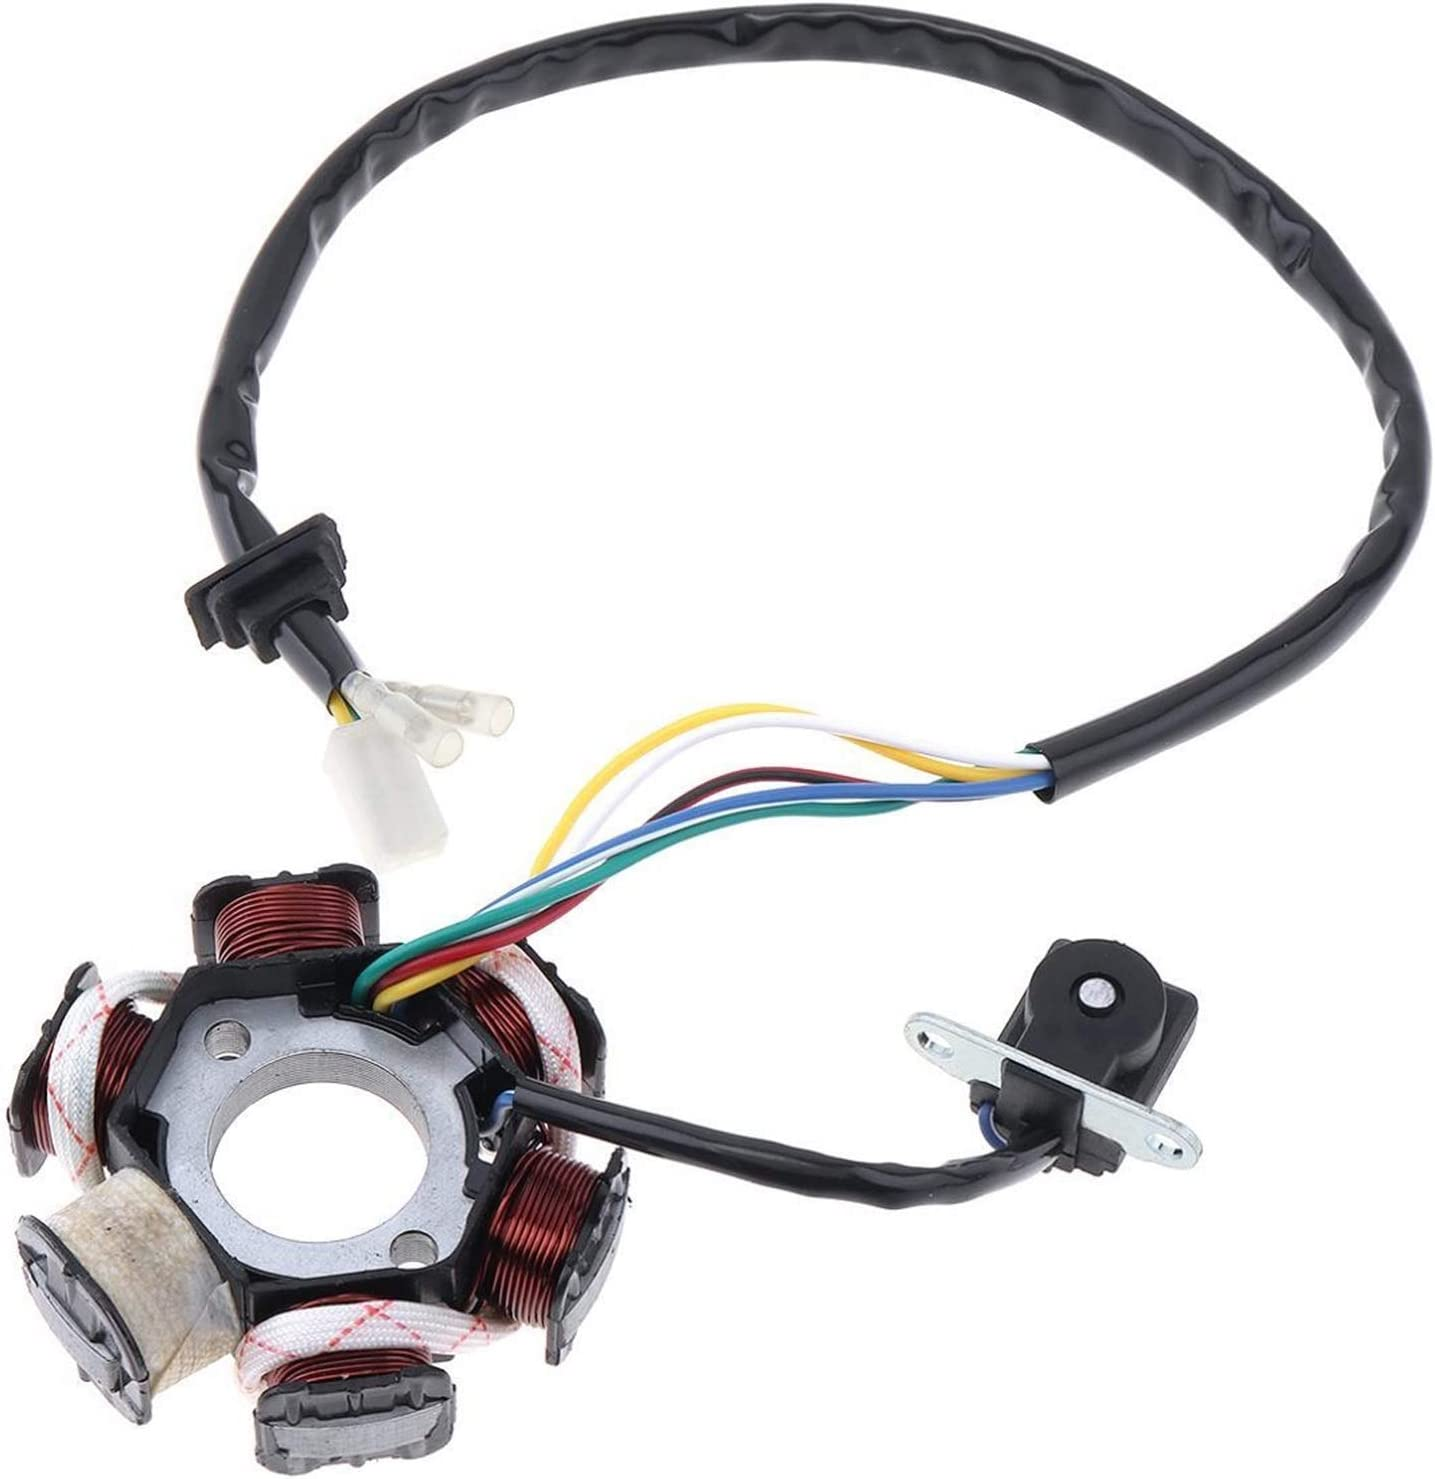 Bargain sale YIWMHE Motorcycle Scooter Generator 6 Coils Stator 1 for Sale special price Magneto